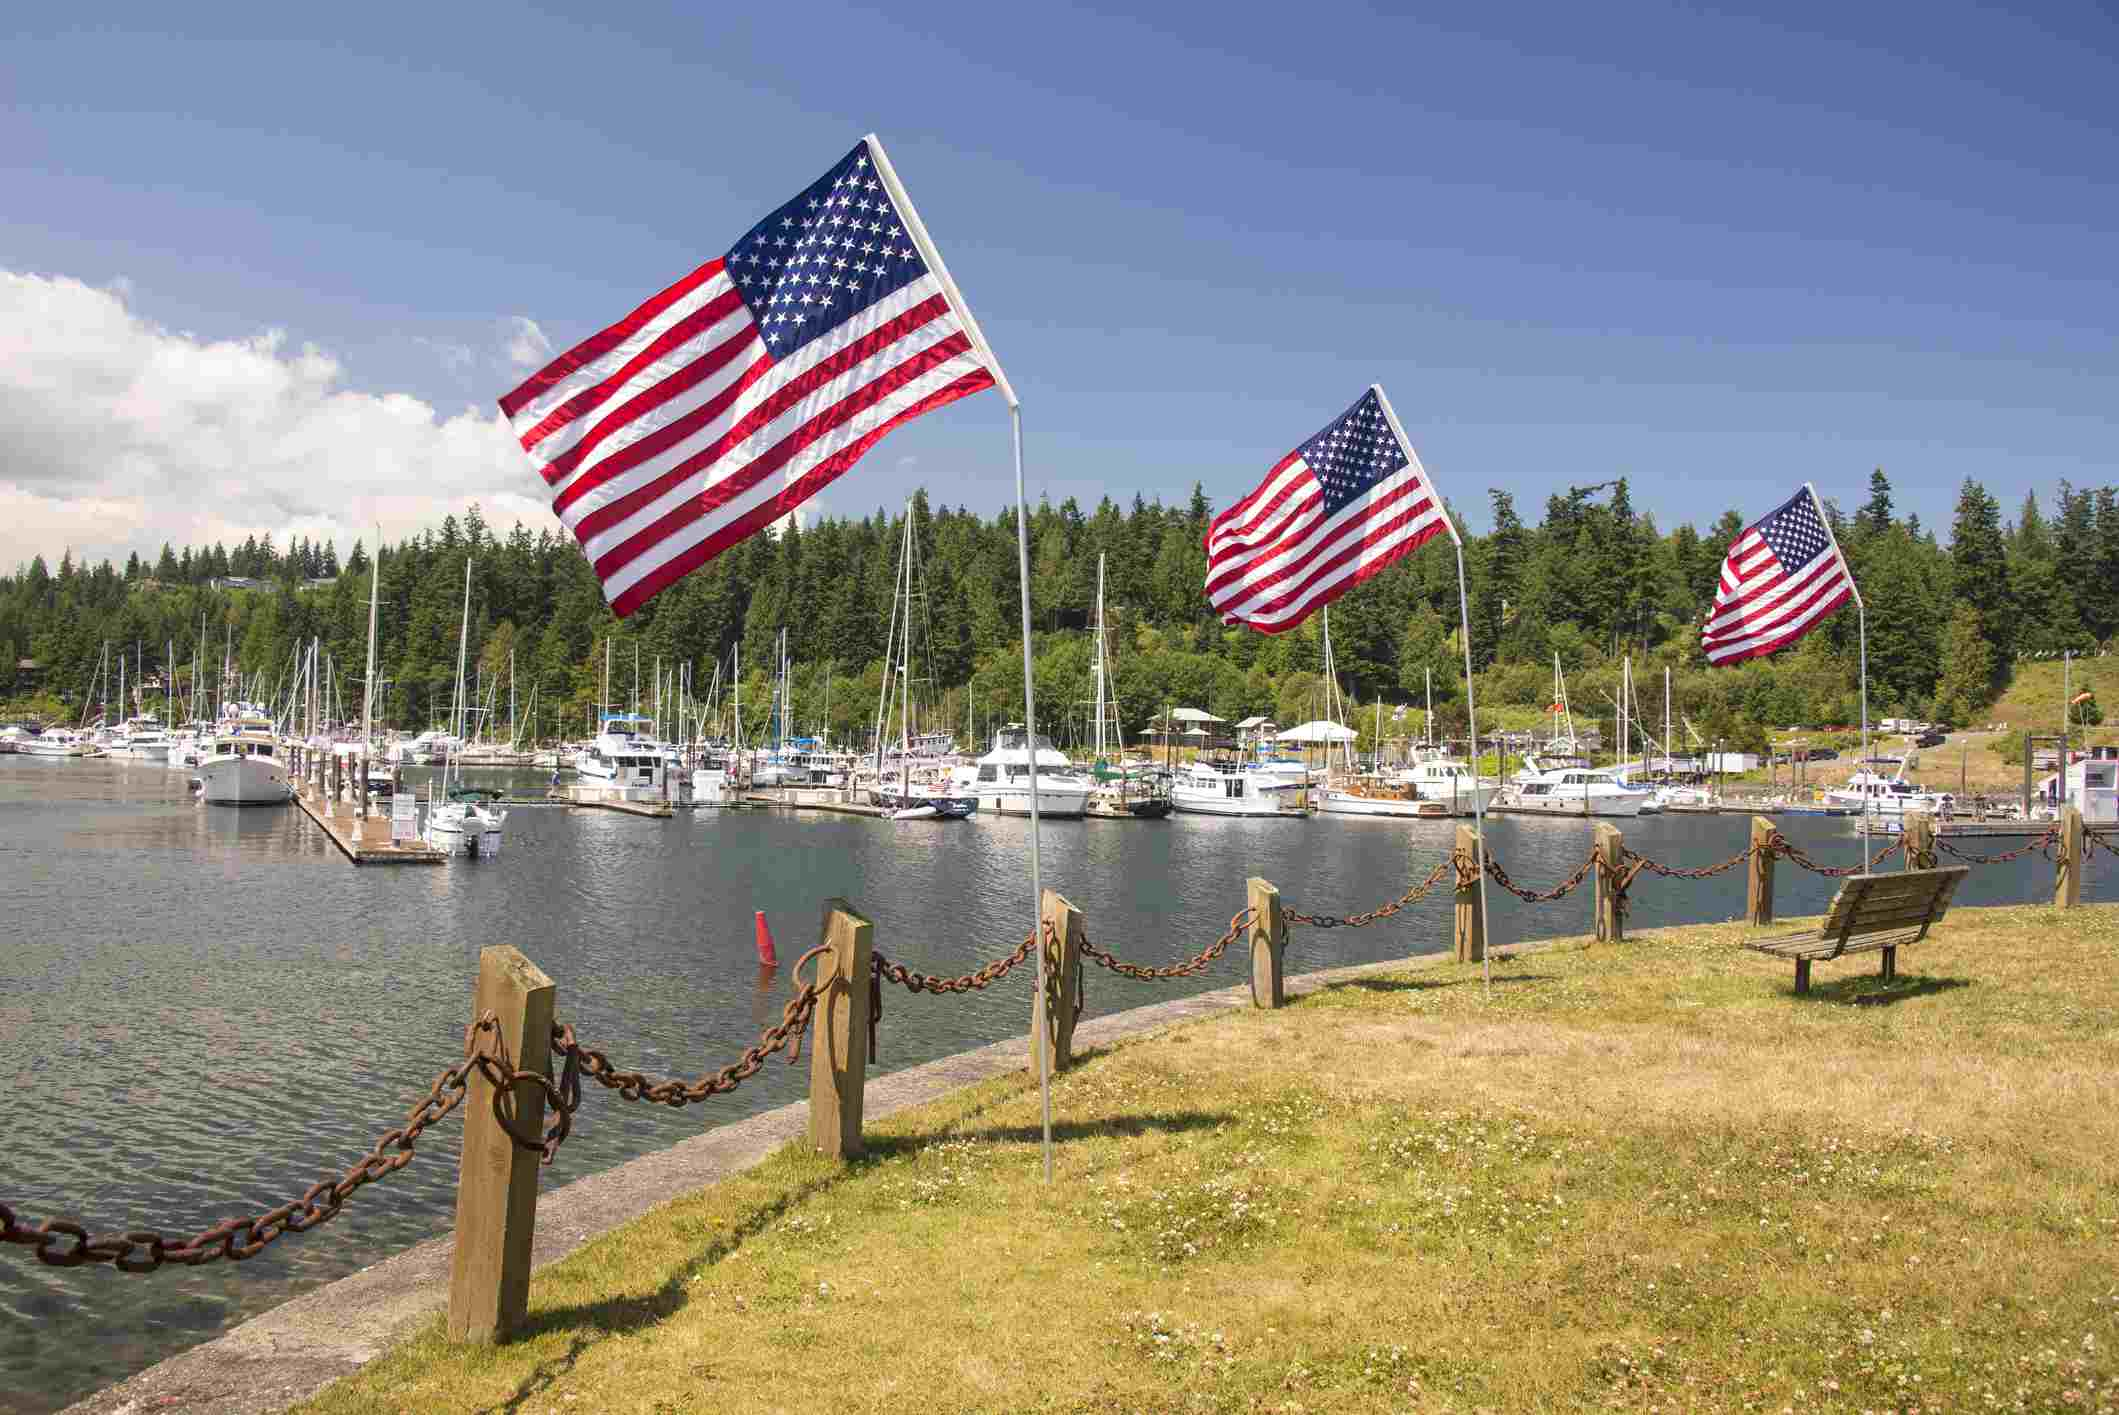 Waterfront Resort and marina at entrance to Hood Canal, 4th of July flag display, Port Ludlow, Washington State, USA